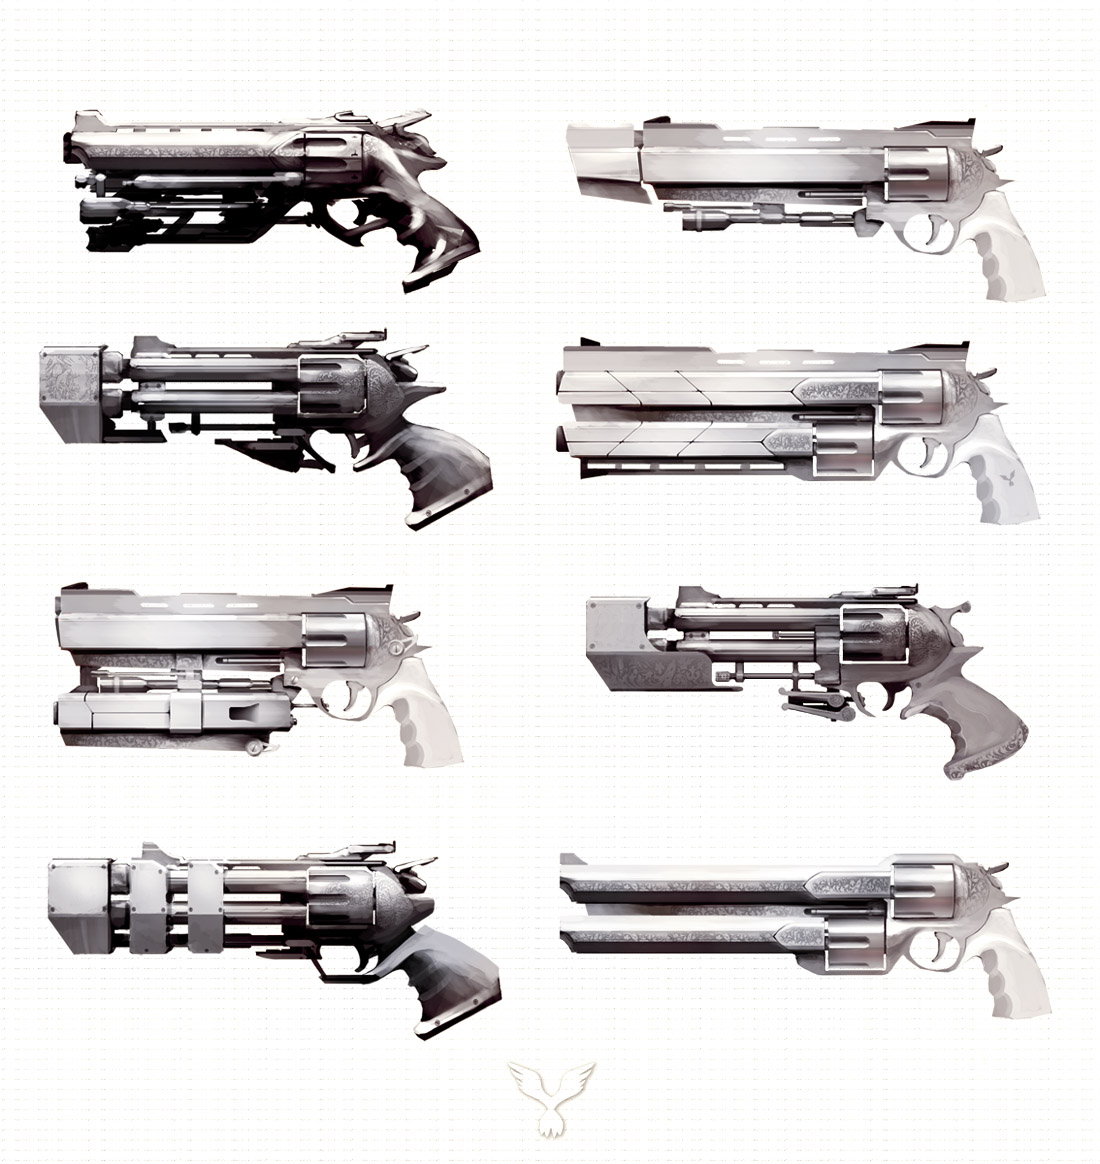 Drawn pistol awesome gun Weapons futuristic medieval cool weapons